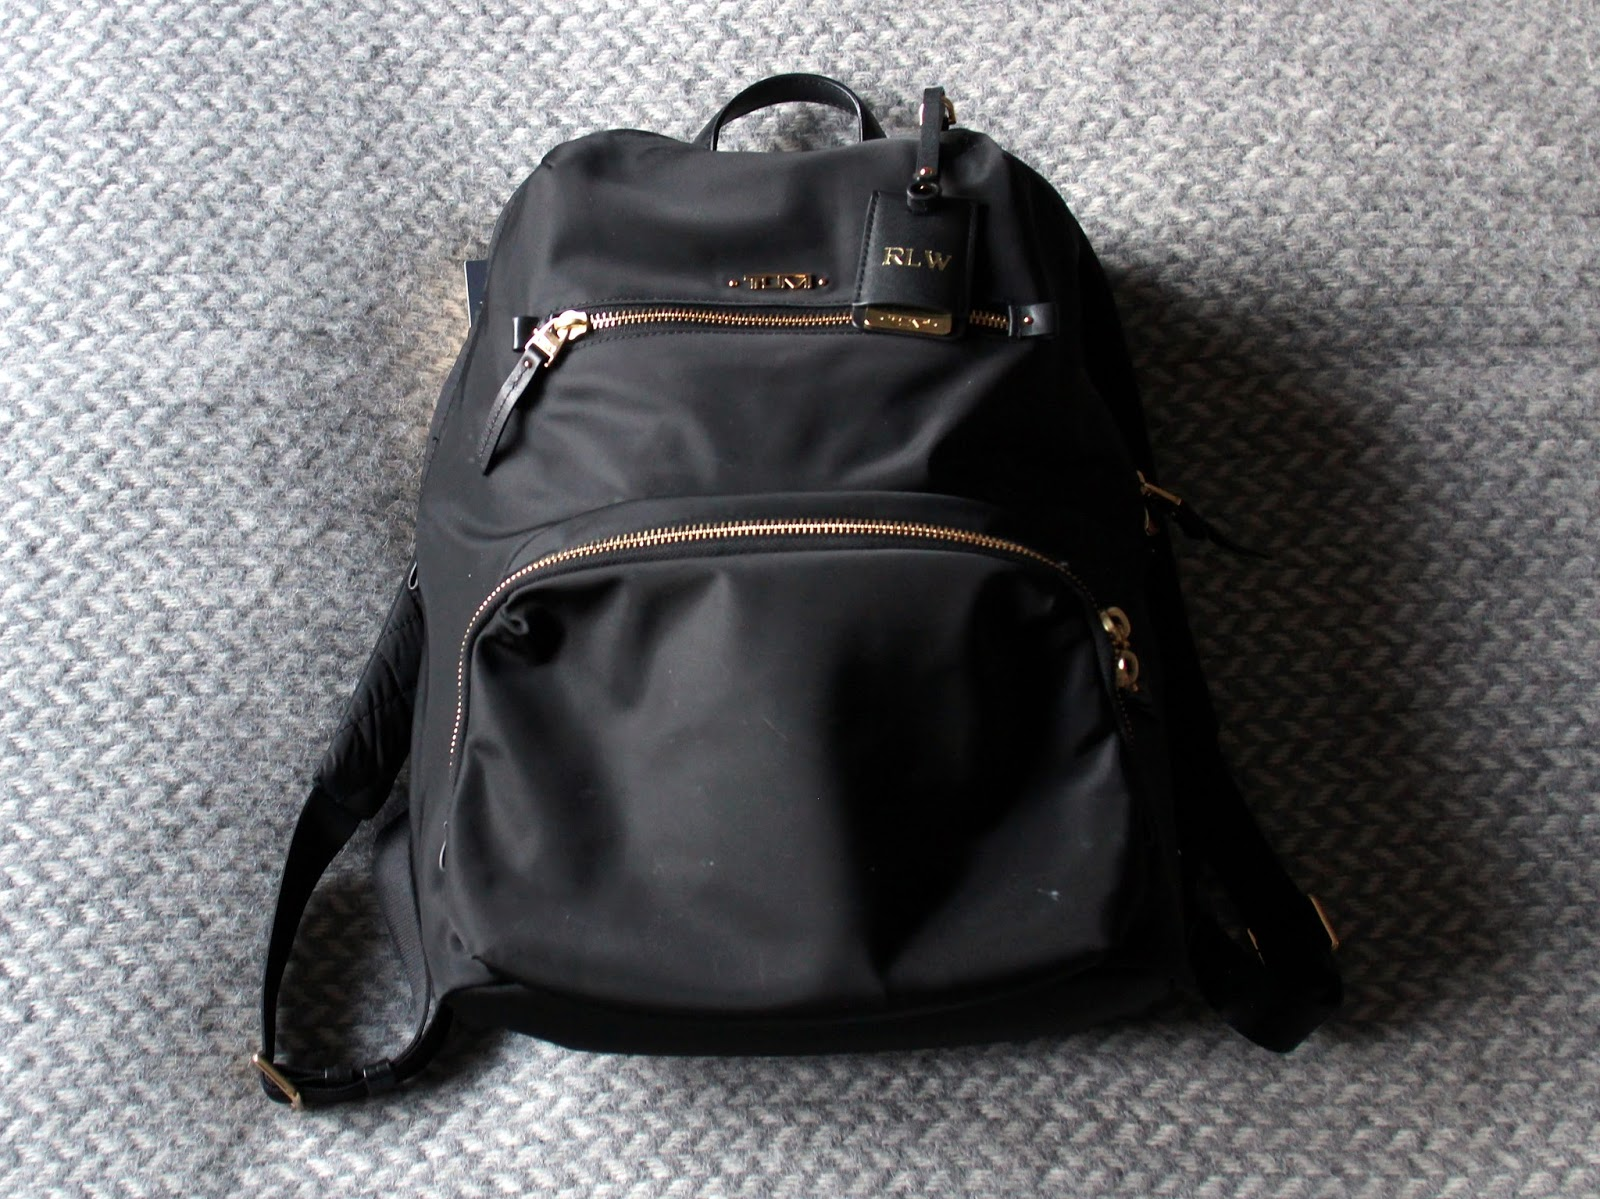 7ee96fab58 My parents bought me the Tumi Voyageur Halle backpack as an early birthday  present last year and it has replaced Longchamp s Le Pliage large shopper as  my ...